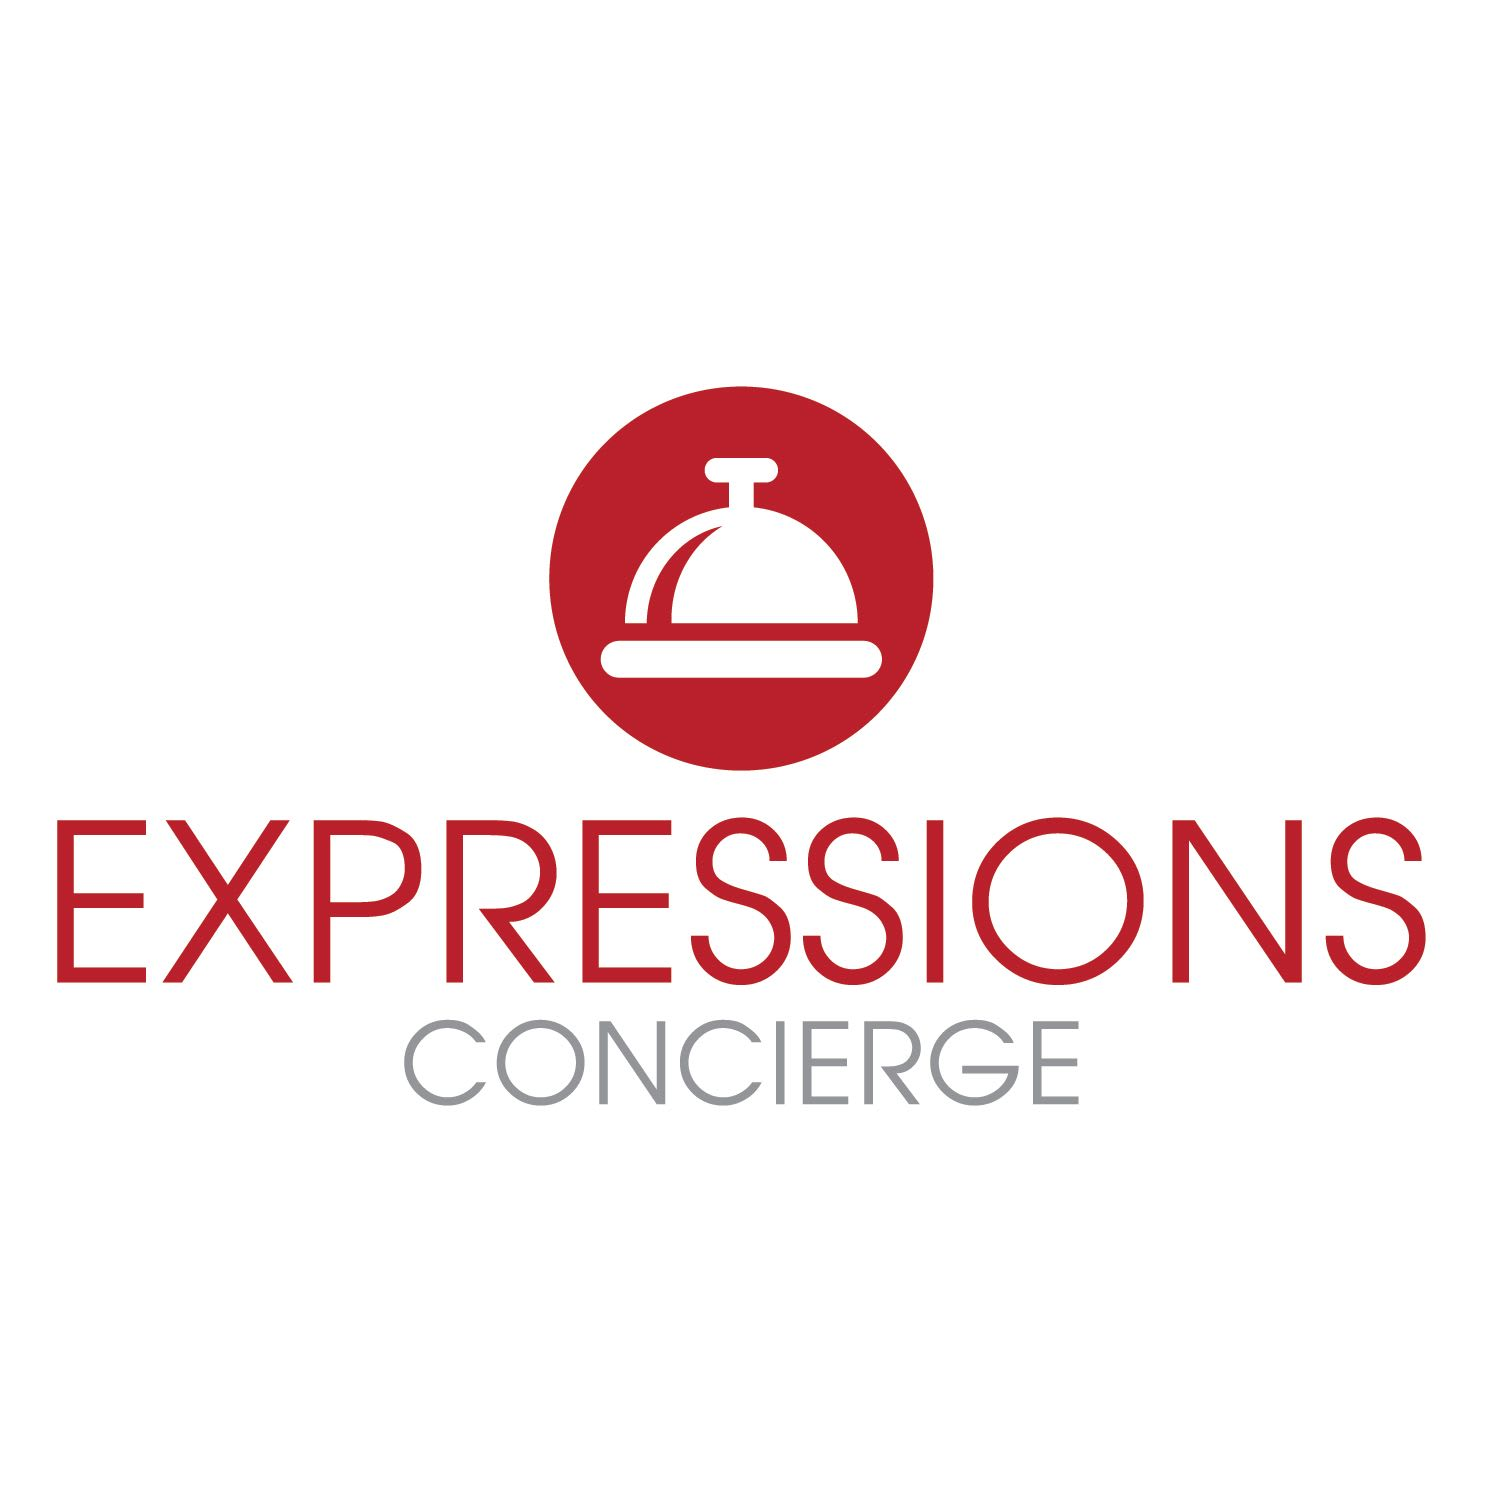 Expressions concierge services at Discovery Village At Alliance Town Center in Fort Worth, Texas